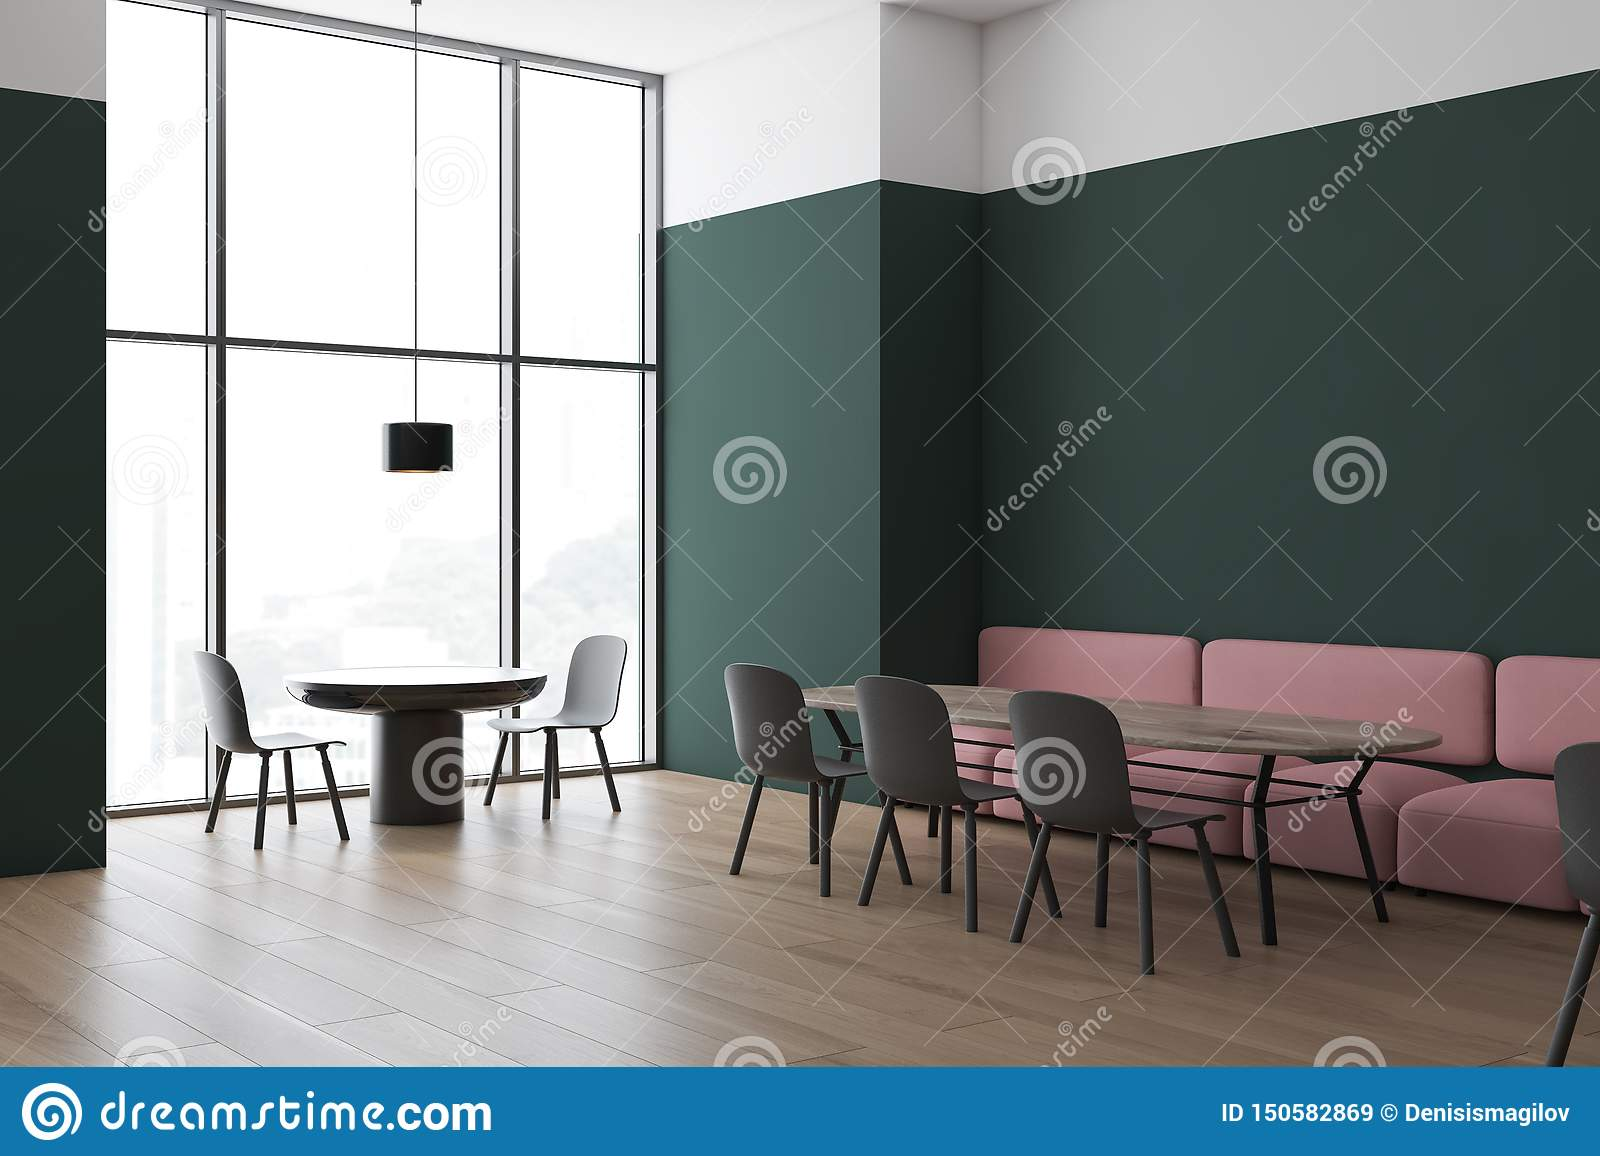 Green And White Cafe Corner With Sofa Stock Illustration Illustration Of Pink Floor 150582869